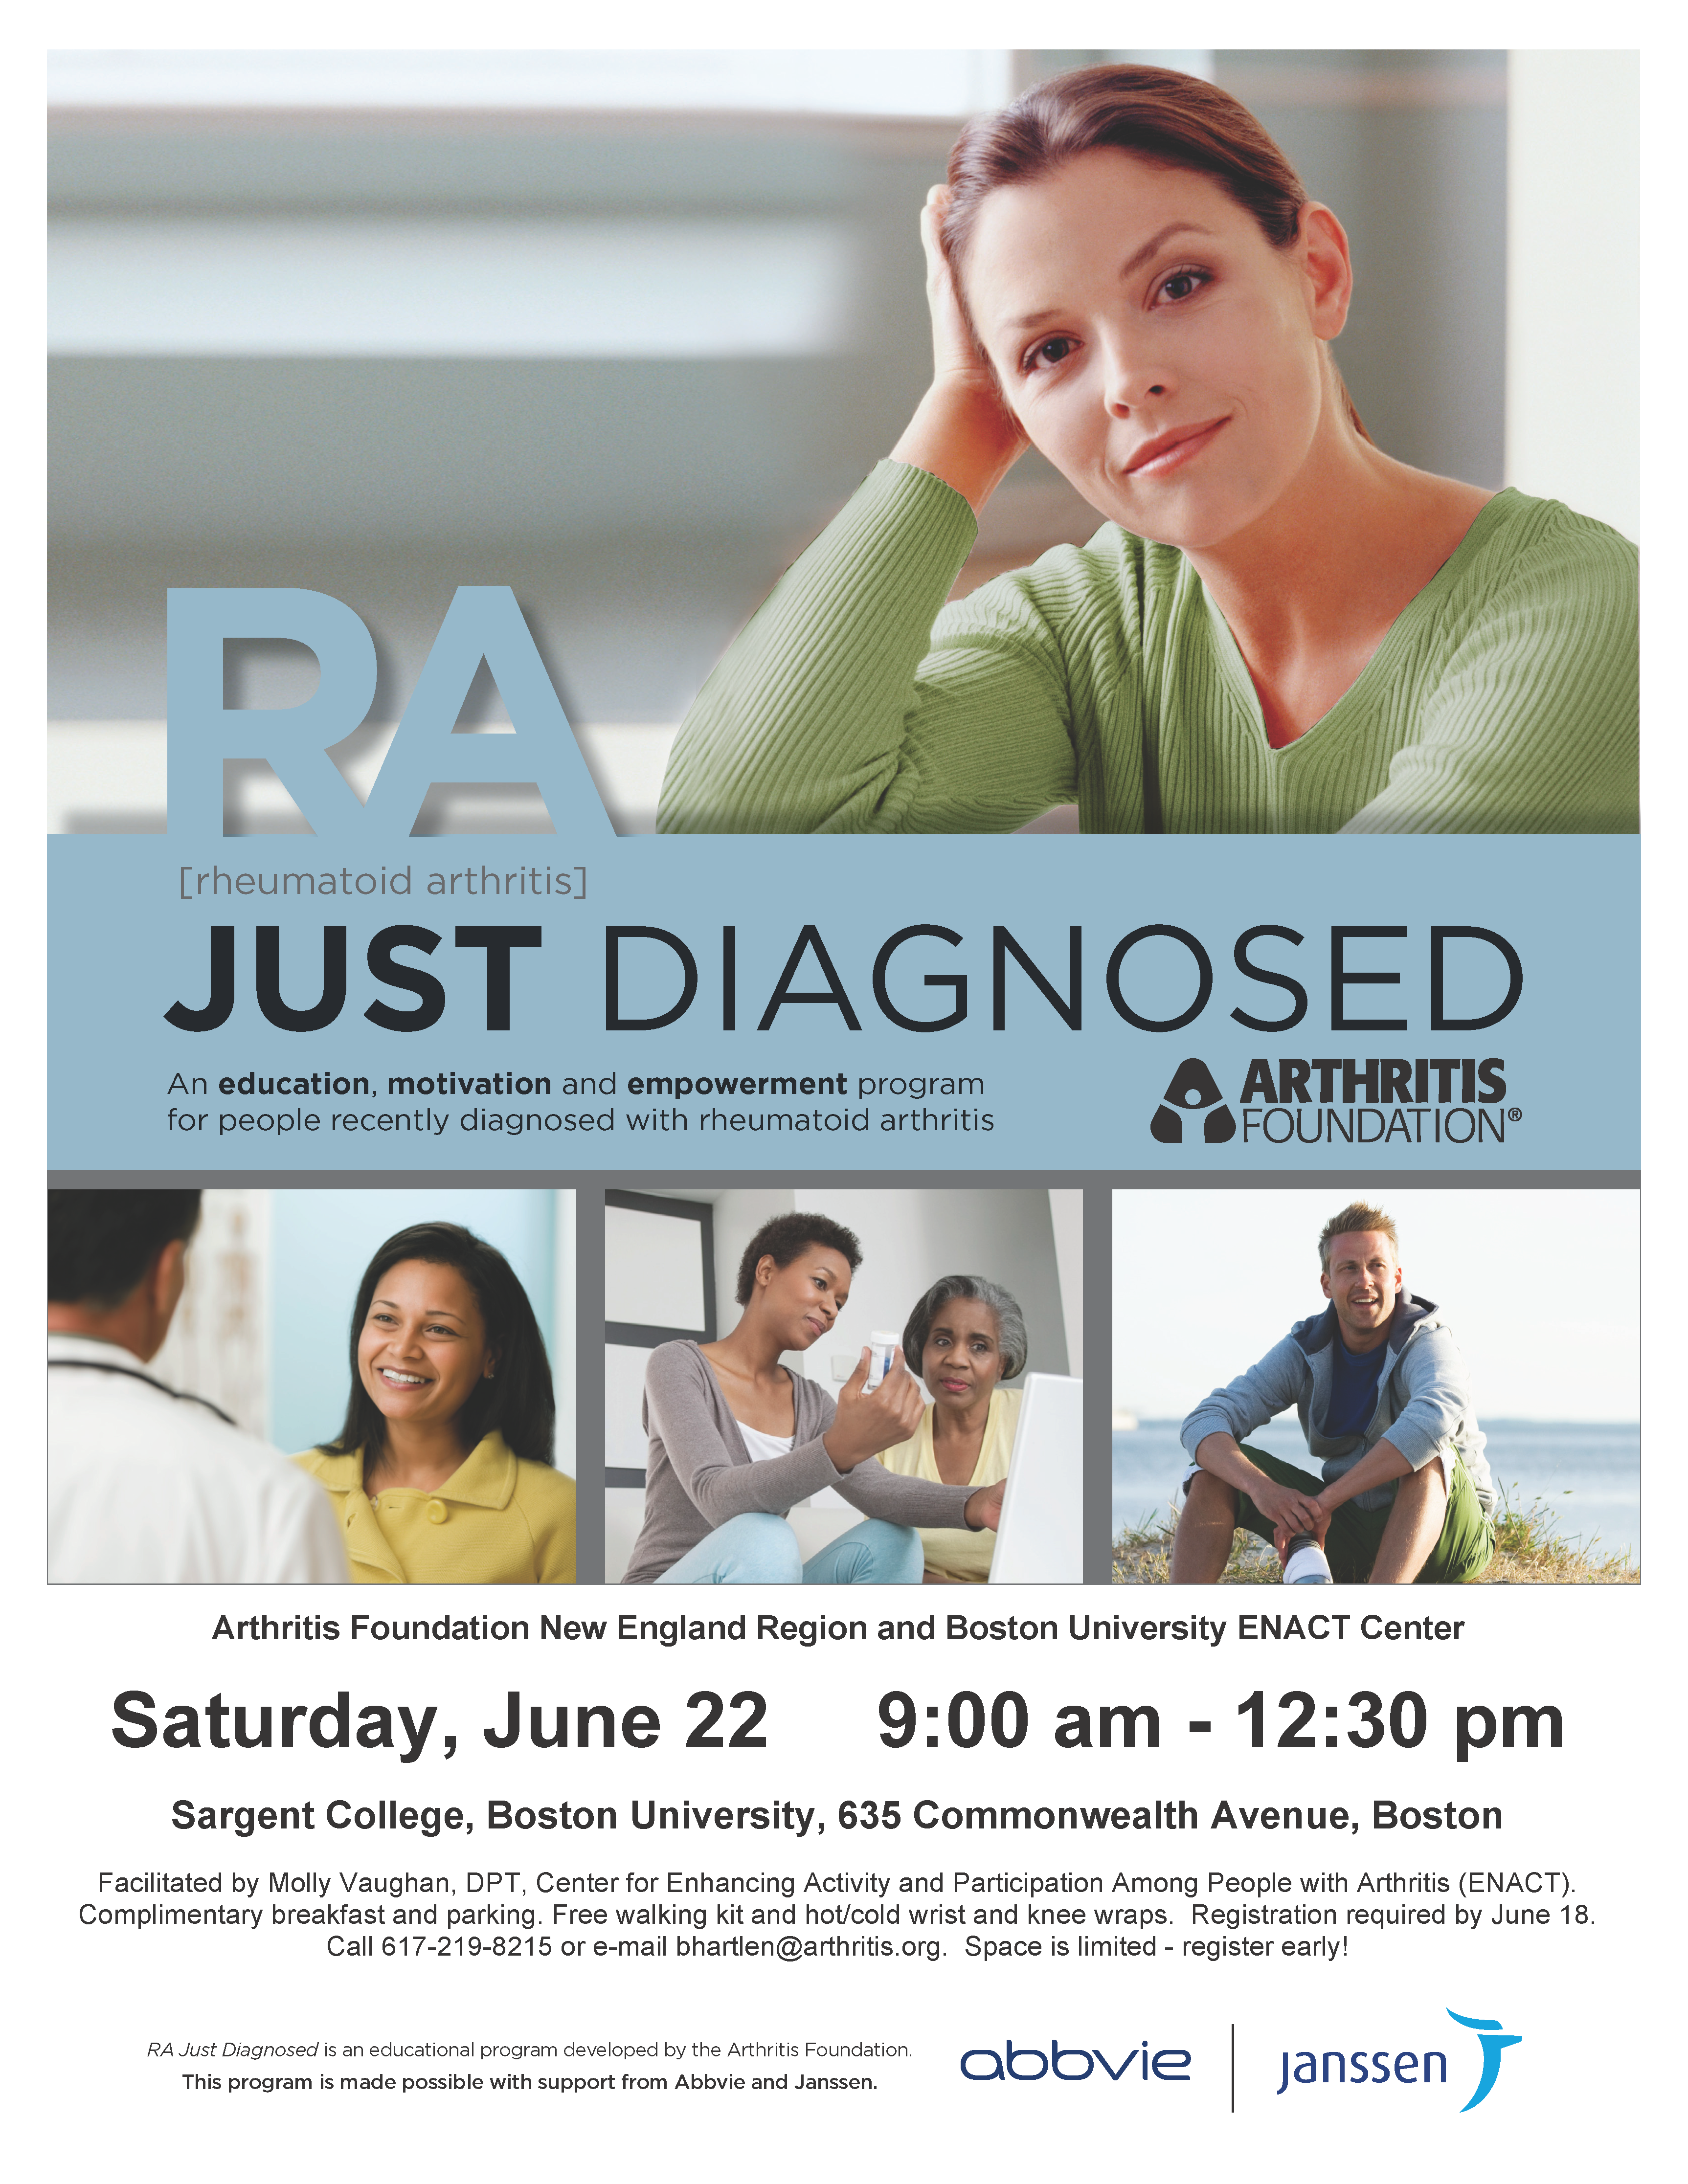 Boston Area Ra Patients Register Now For The Free June 22nd Arthritis Foundation Seminar For People Newly Diagnosed With Rheumatoid Arthritis Ra Arthritis Exercise Active Living The Enact Center